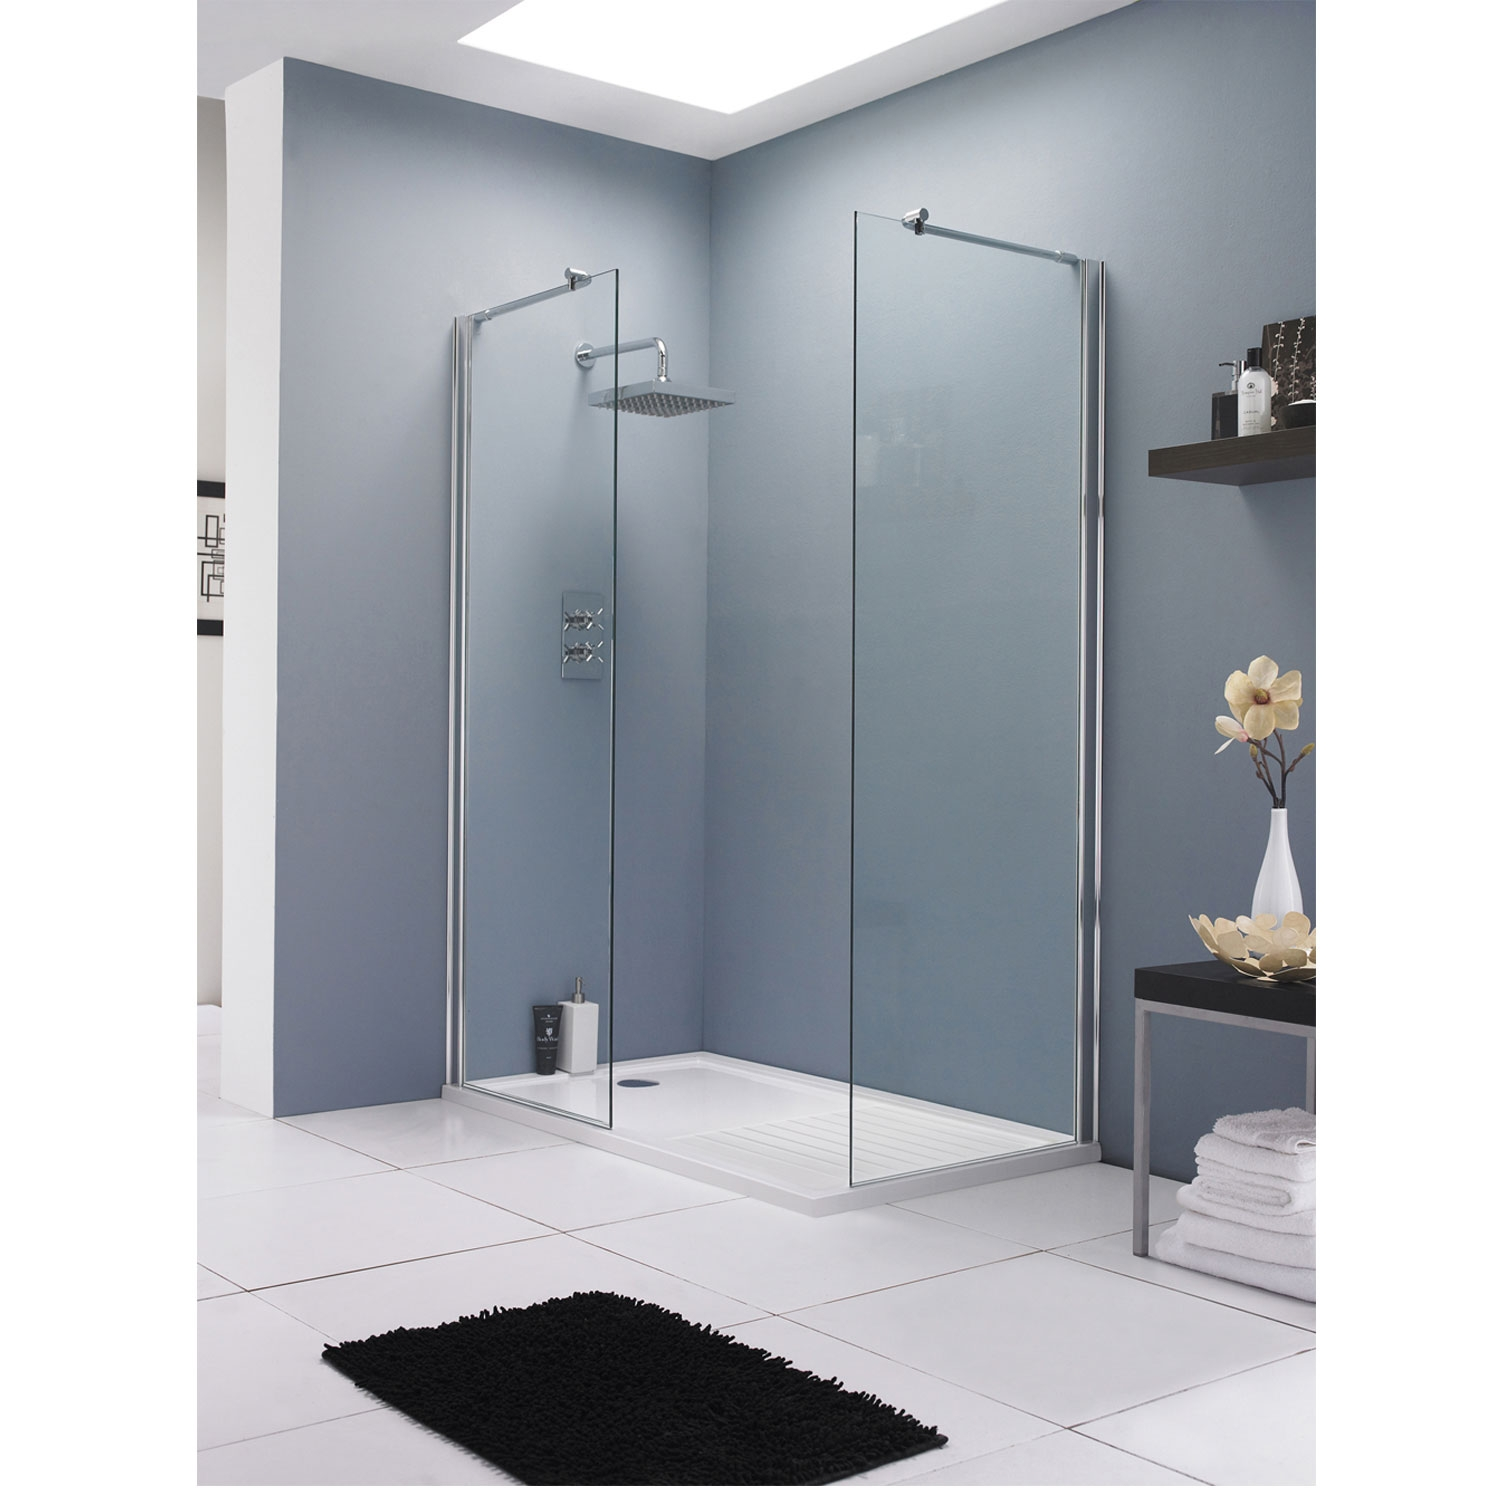 Hudson Reed Wet Room Screen with Support Bar 700mm Wide - 8mm Glass